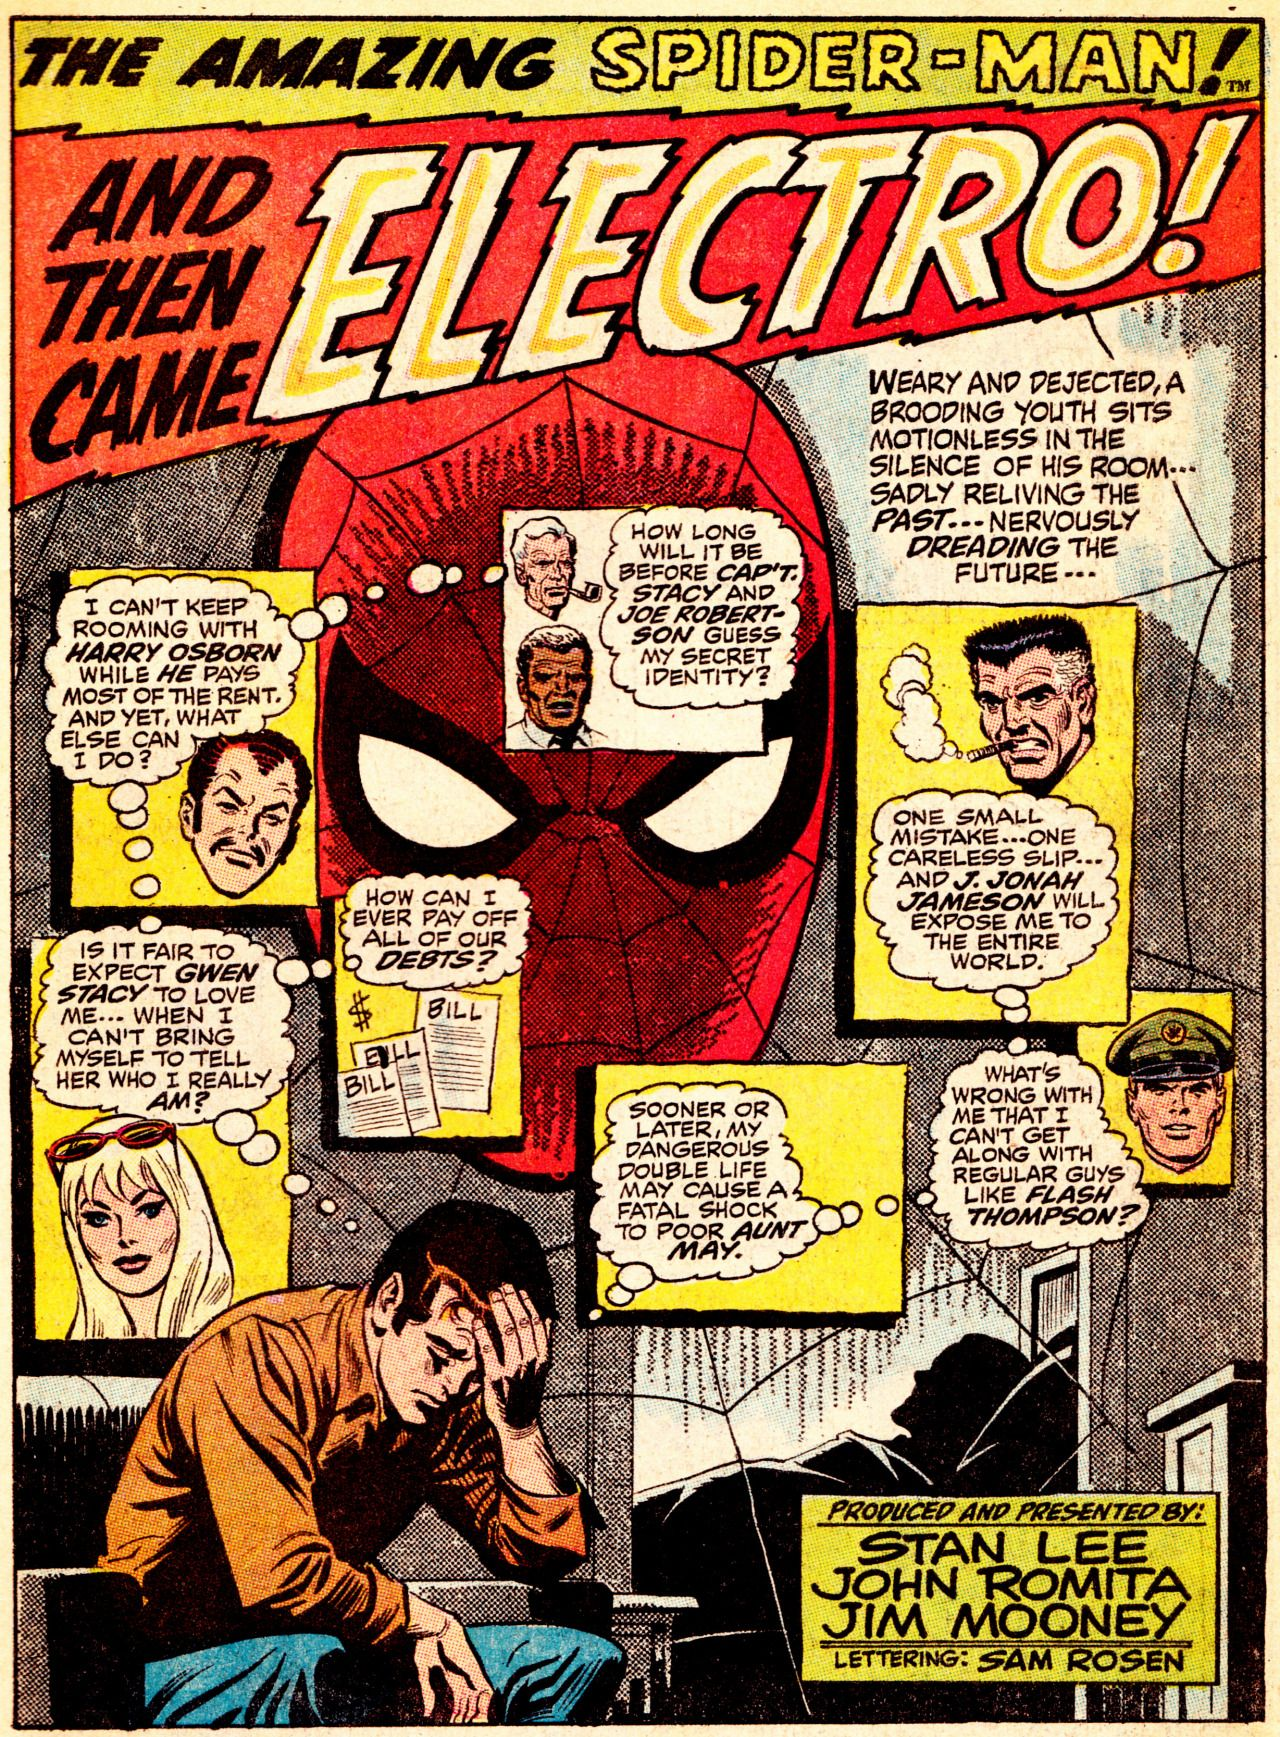 AMAZING SPIDER-MAN #82 (March 1970)